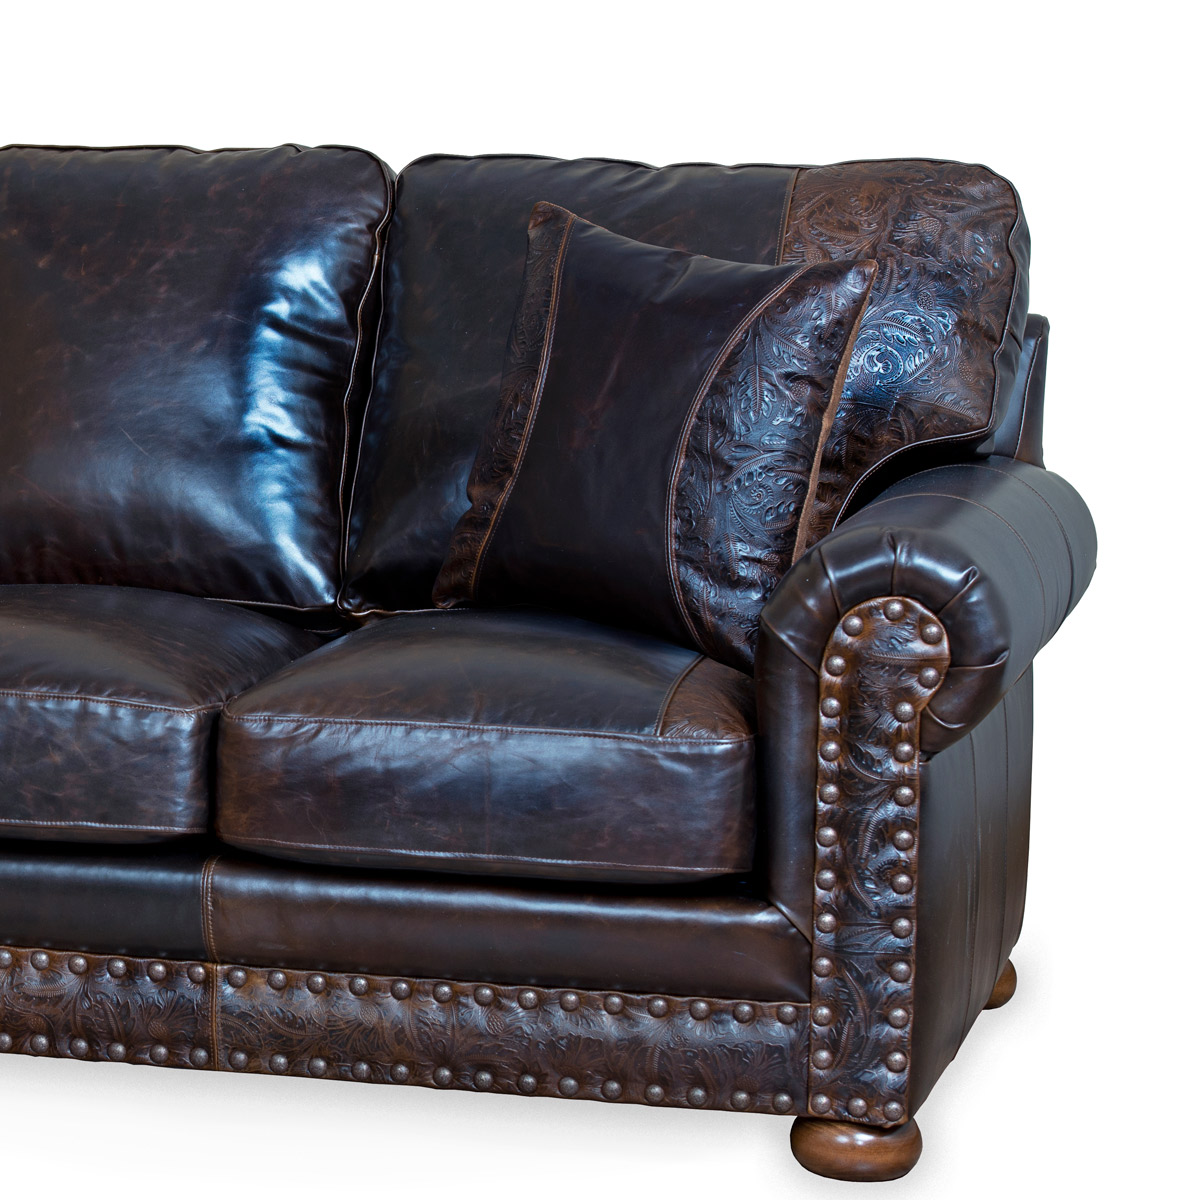 The American Outlaw Loveseat